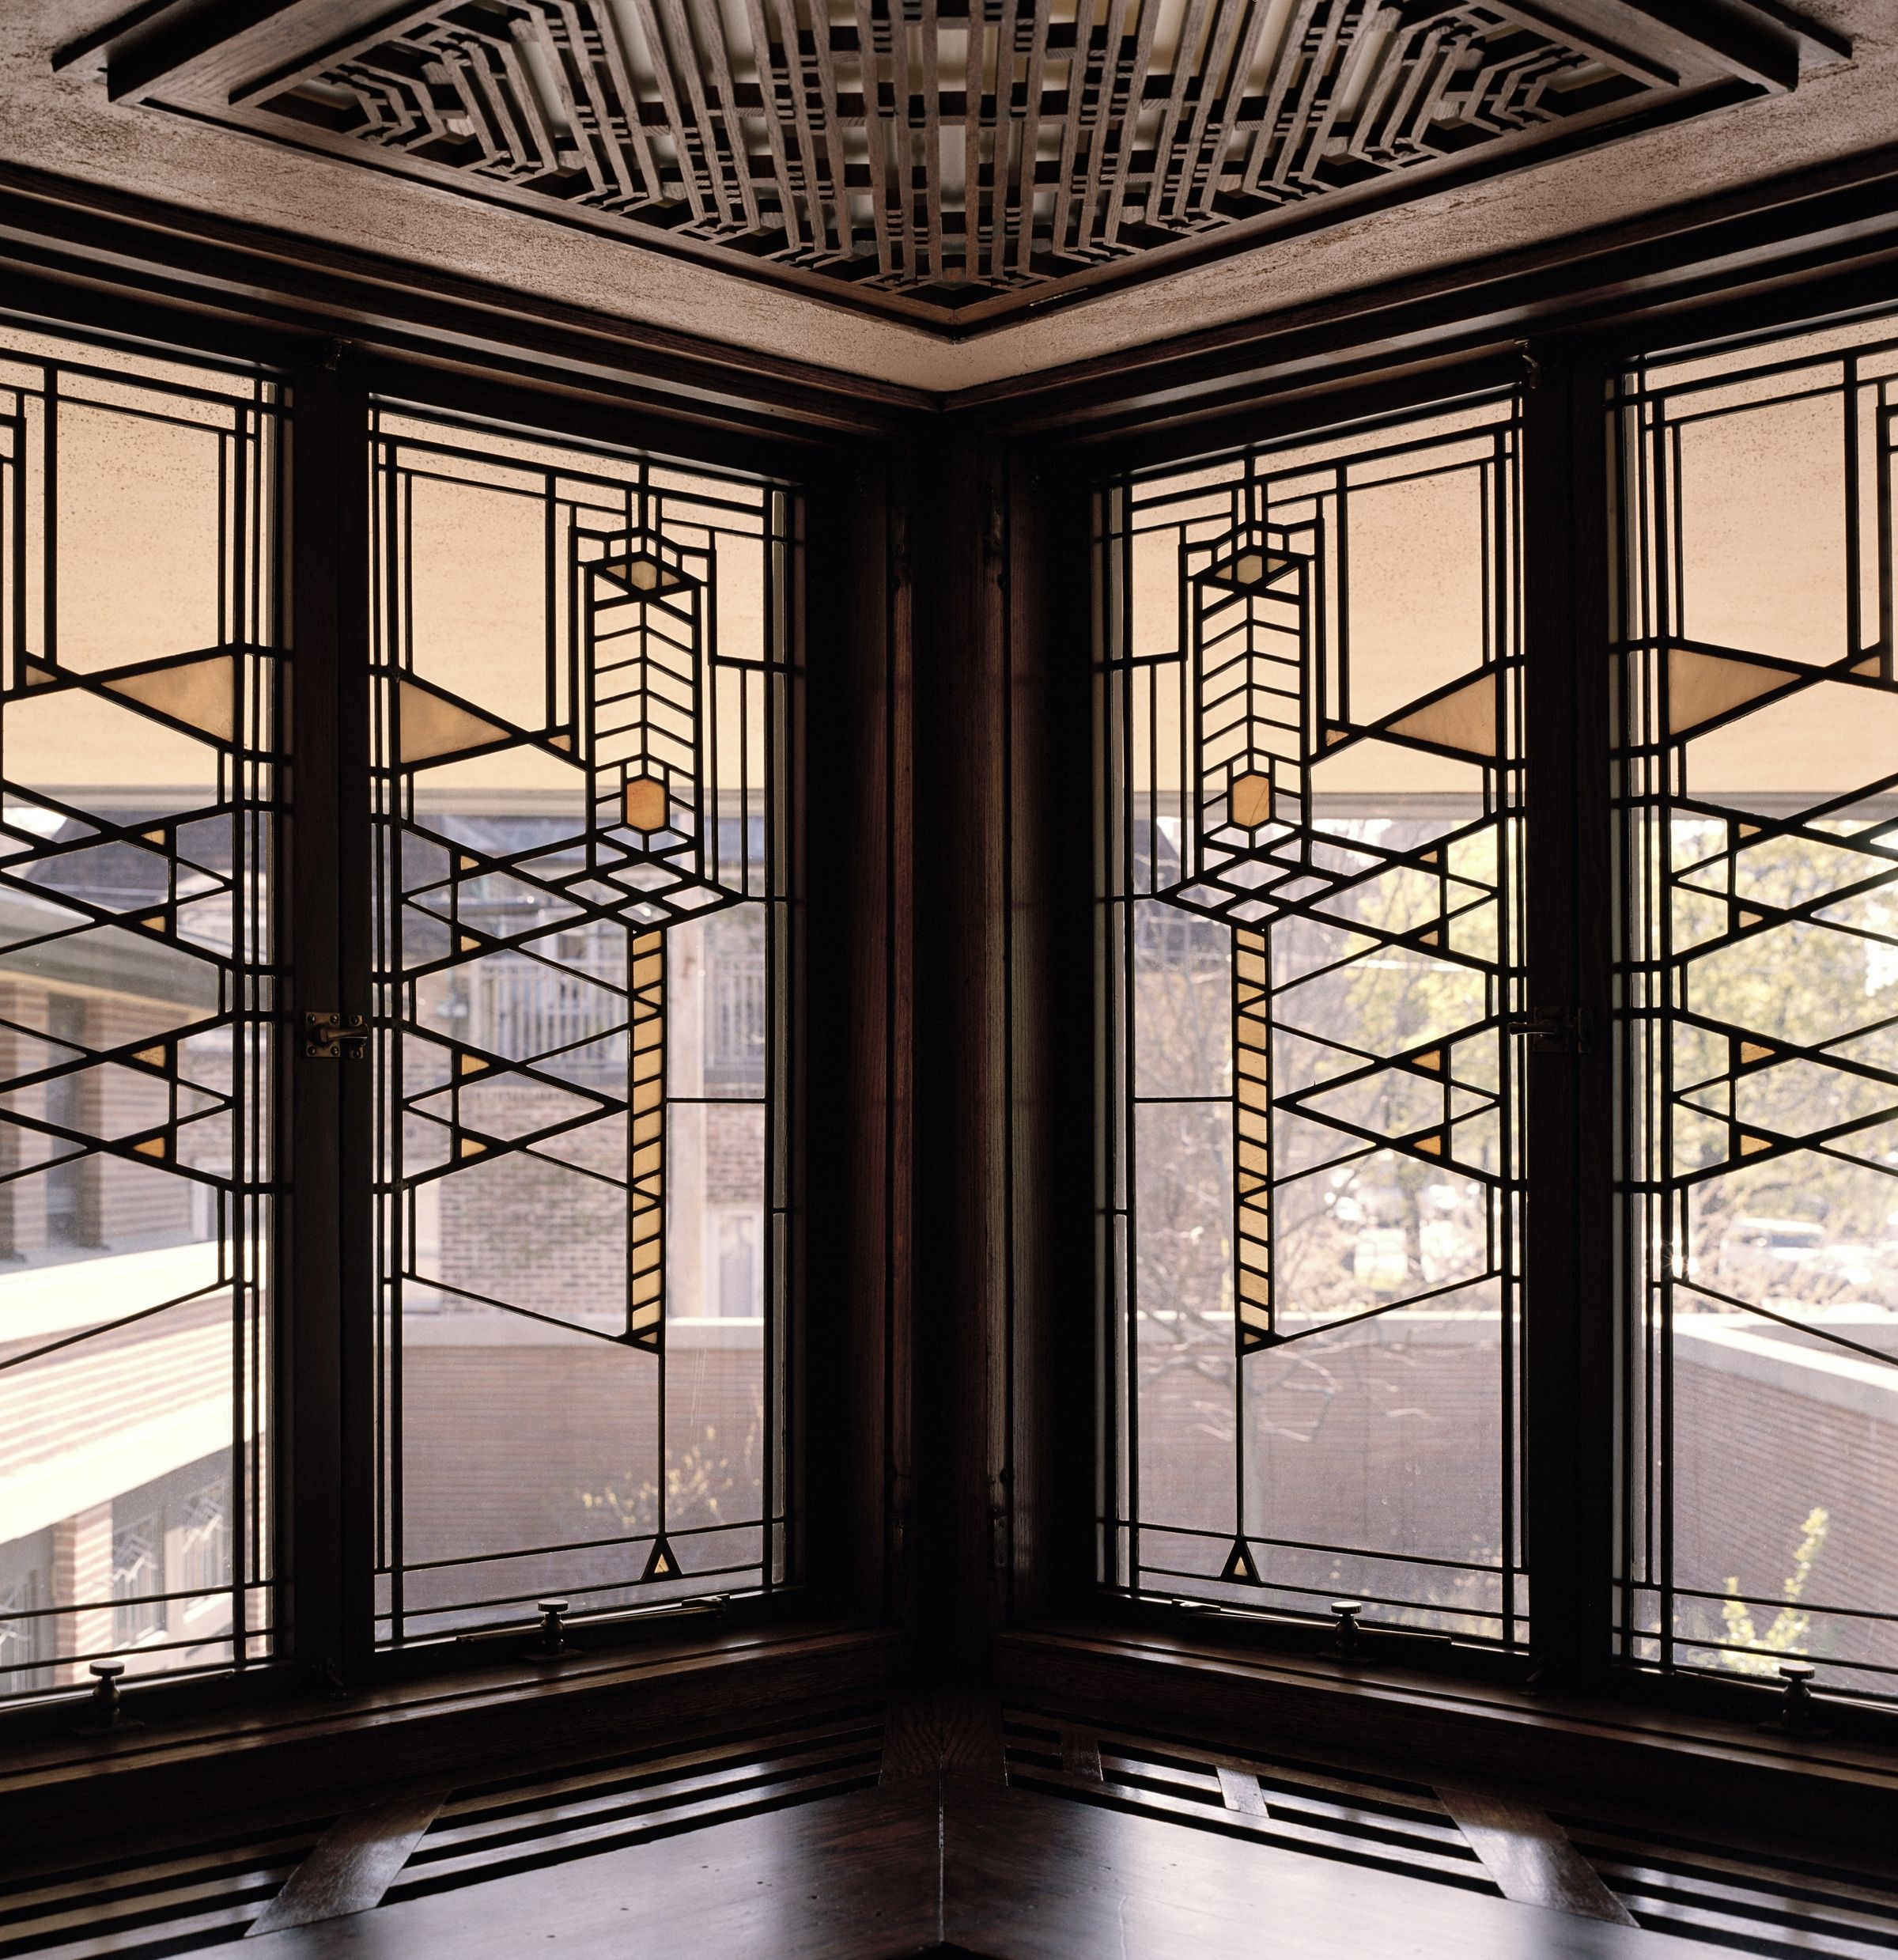 Elegant Stained Glass Doors And Windows; 1890s 1910s; Frederick C. Robie House; Photo